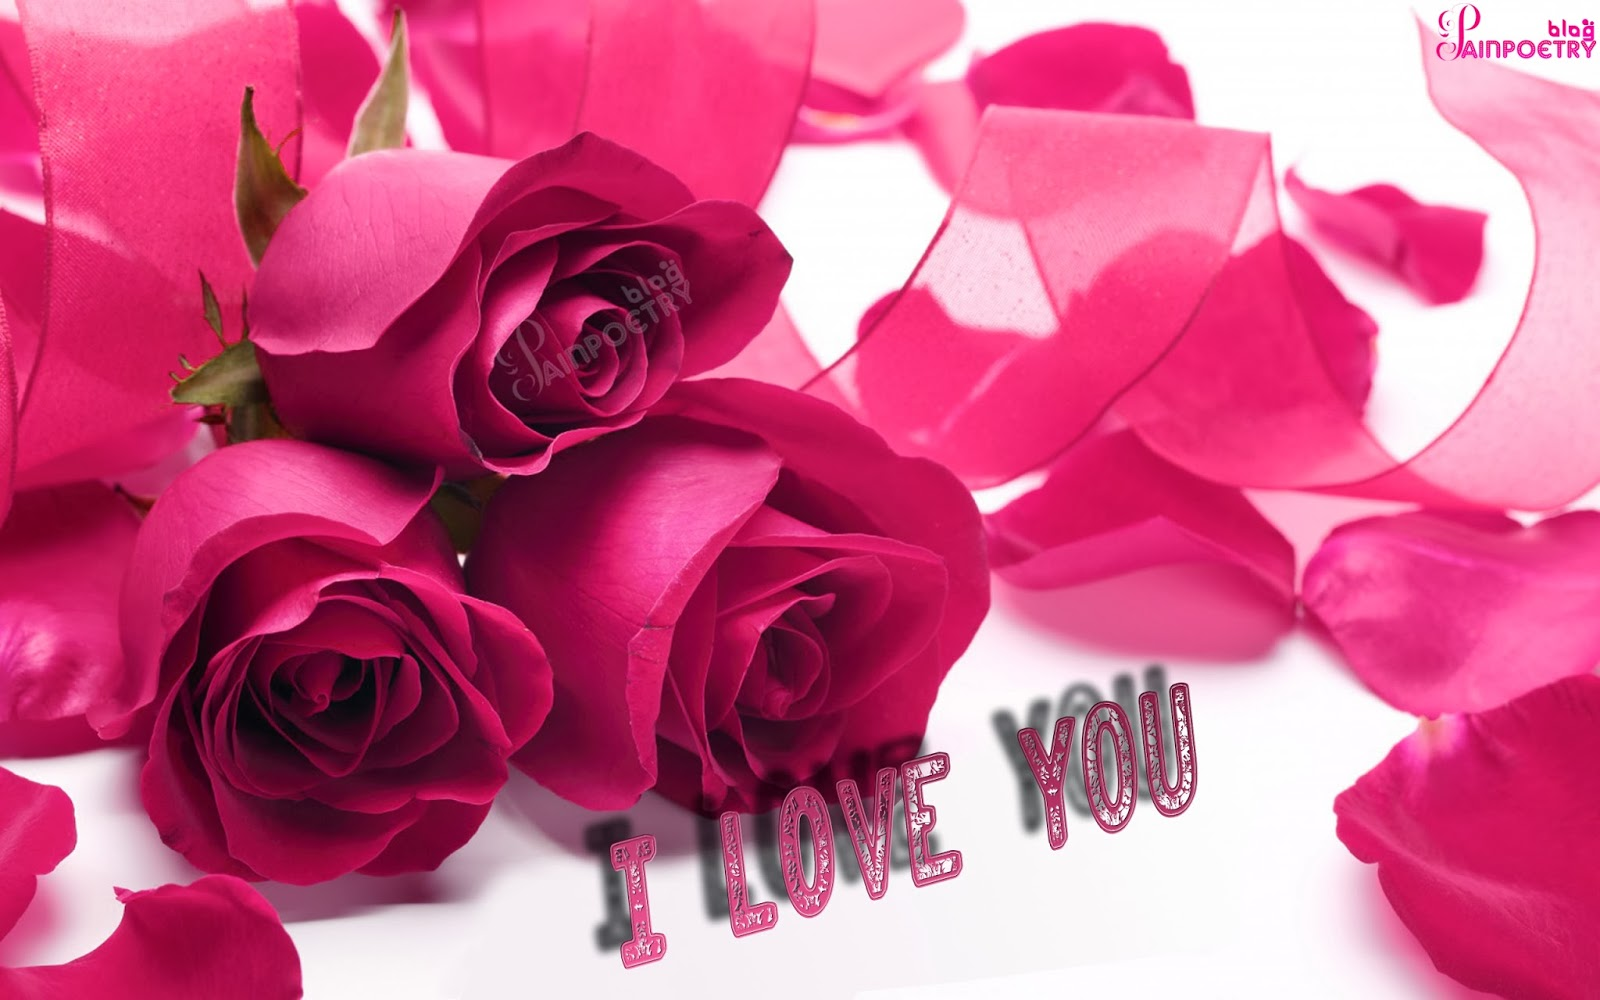 Love-Wallpaper-With-Lot-Of-Flowers-Image-HD